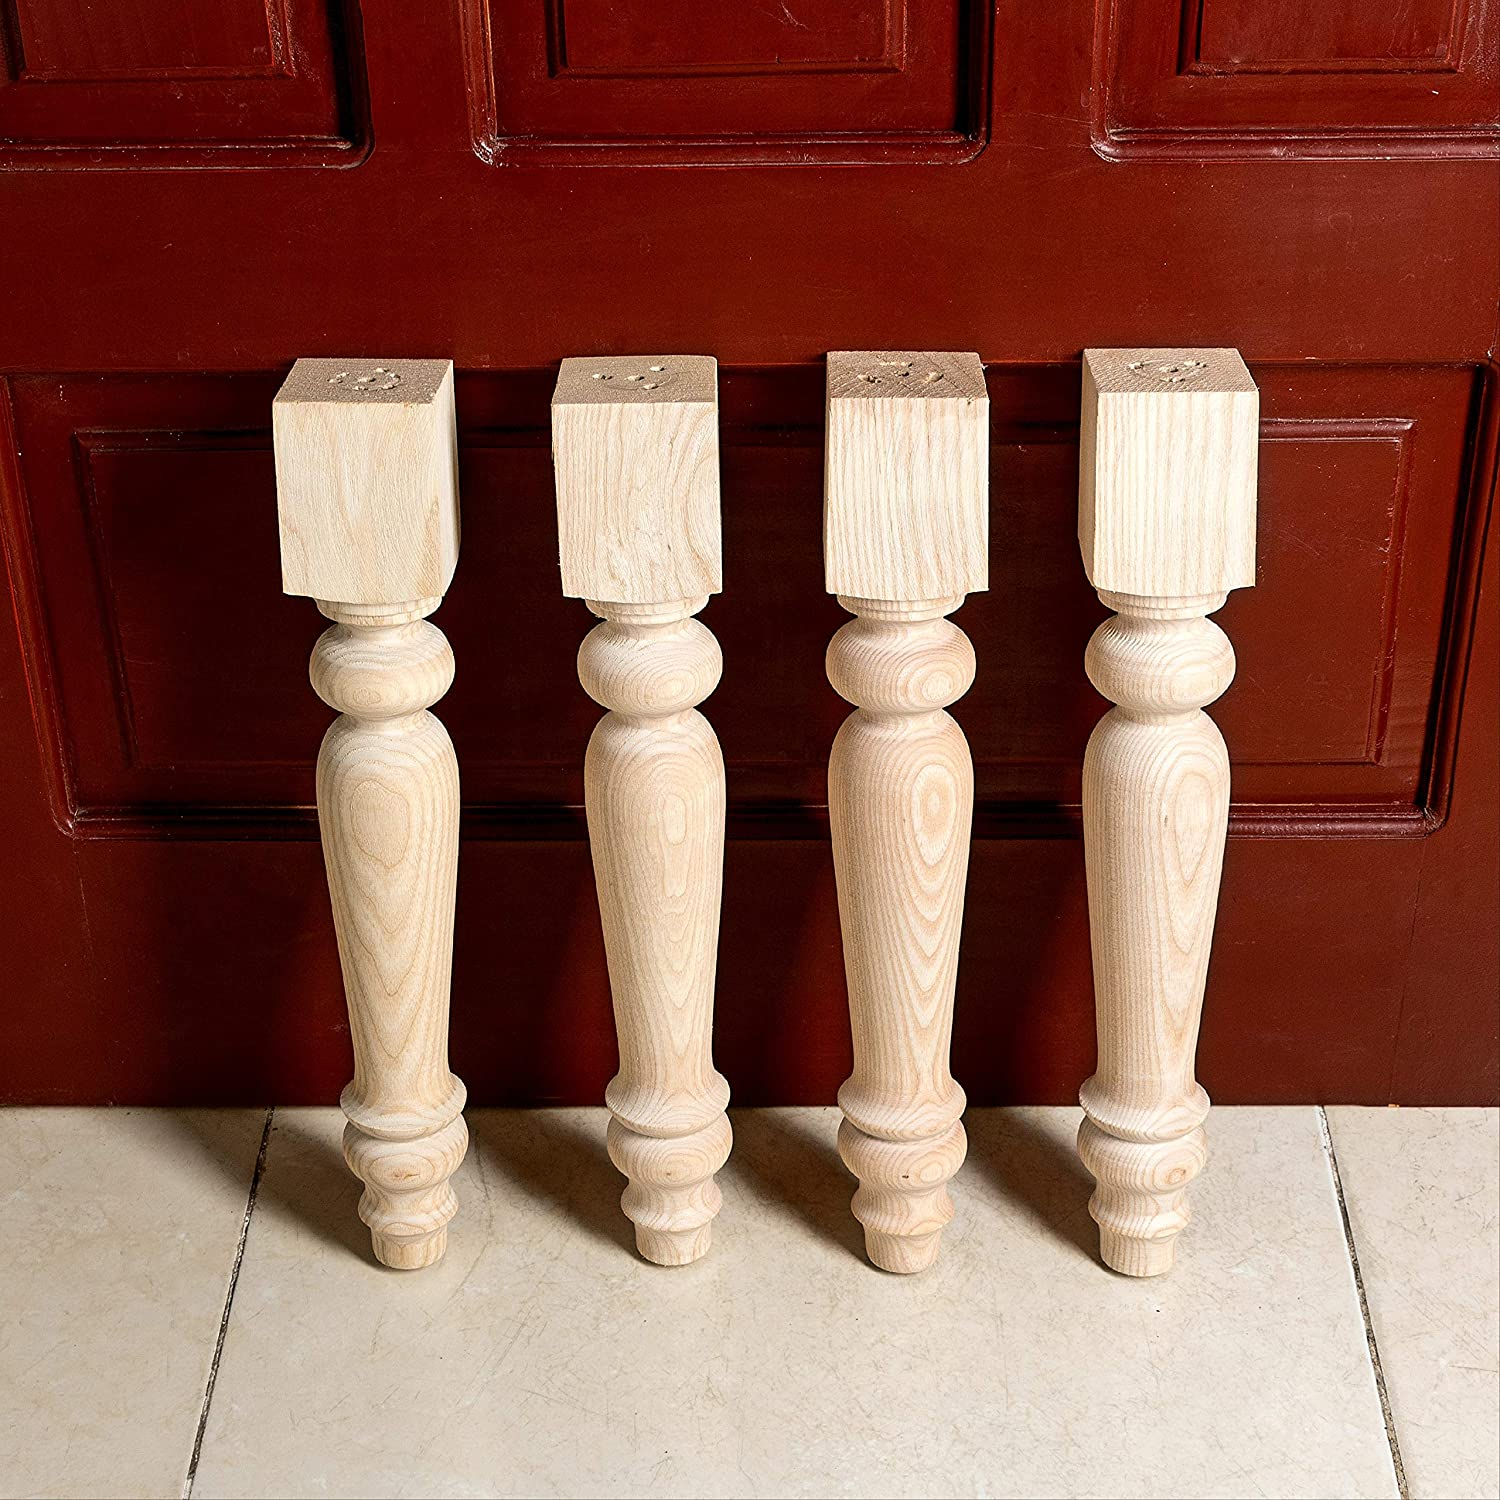 WOODINNO Furniture Legs 16 Inch Chunky Farmhouse Bench Legs for Coffee Table Dining Table | Modern Tapered Round Feet Set of 4 | Easy to Paint and Stain | Ash Wooden Feets